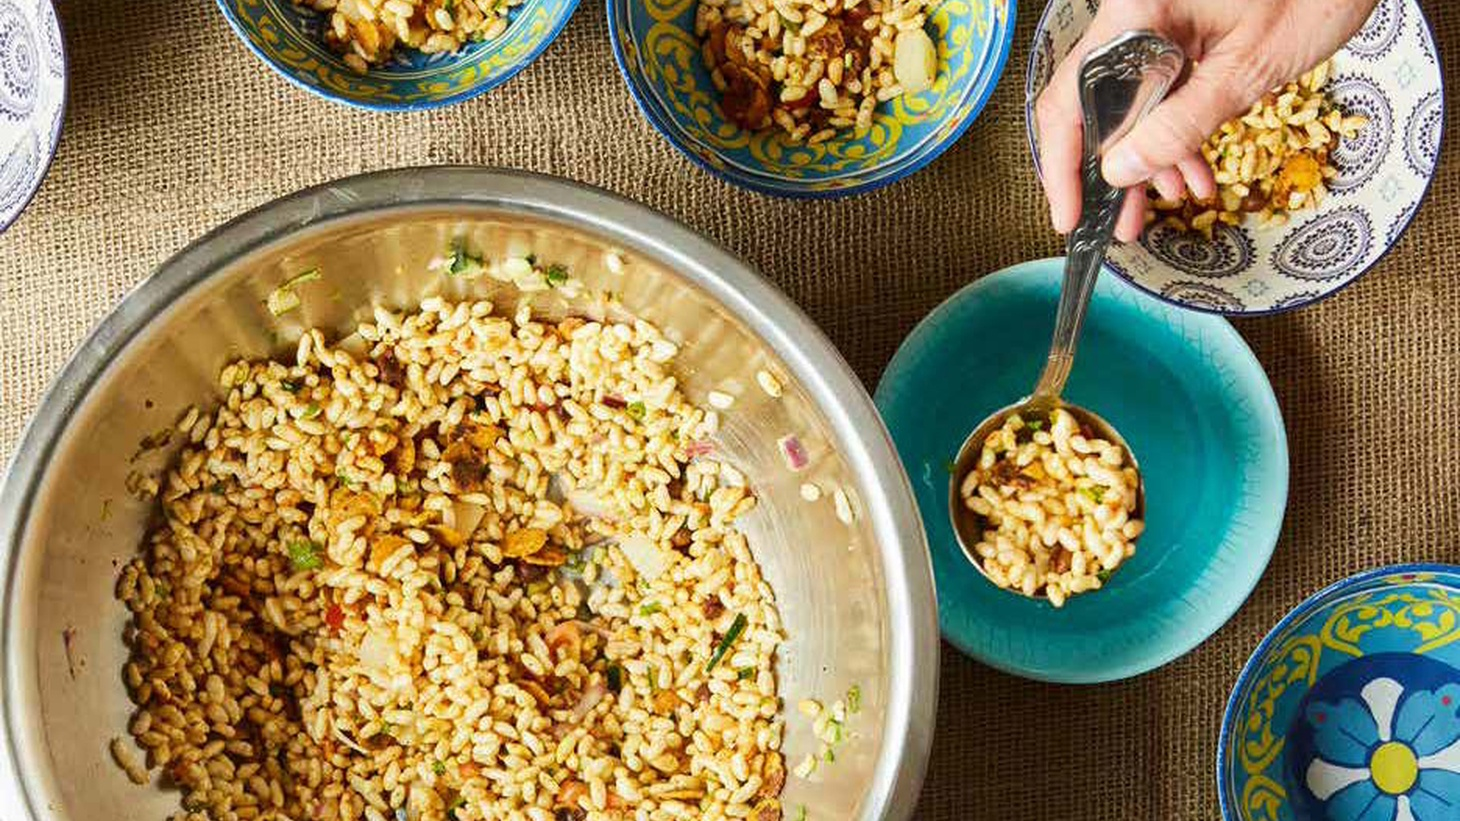 """Jhal muri, a spicy puffed rice, is one of Kolkata's most popular street food snacks. Jhal means """"spicy"""" and muri means """"puffed rice,"""" but according to chef Maneet Chauhan, the dish is much more than that."""